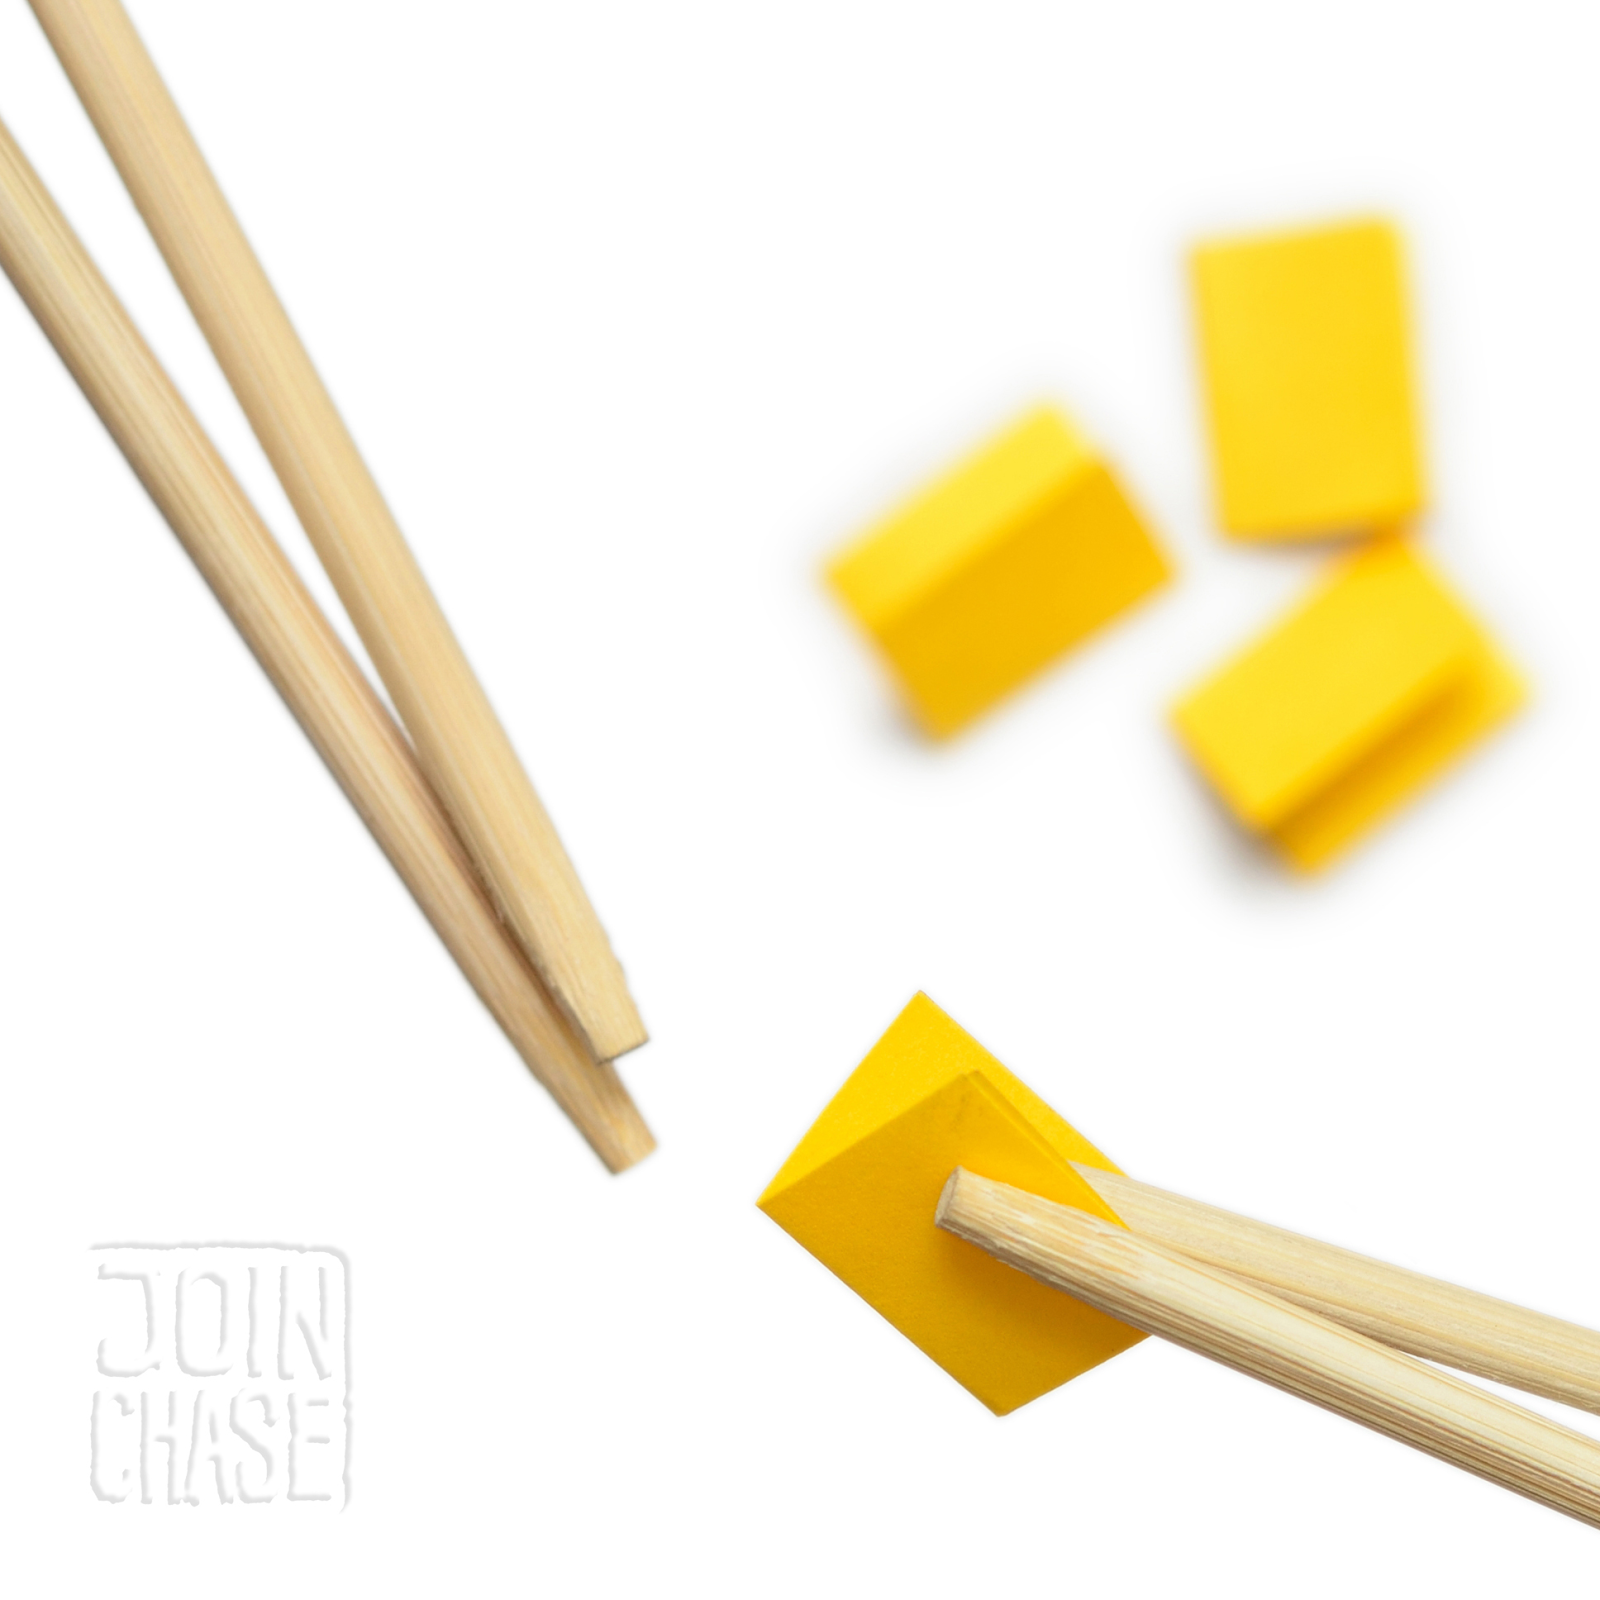 Paper being passed between wooden chopsticks during a game in an English class.